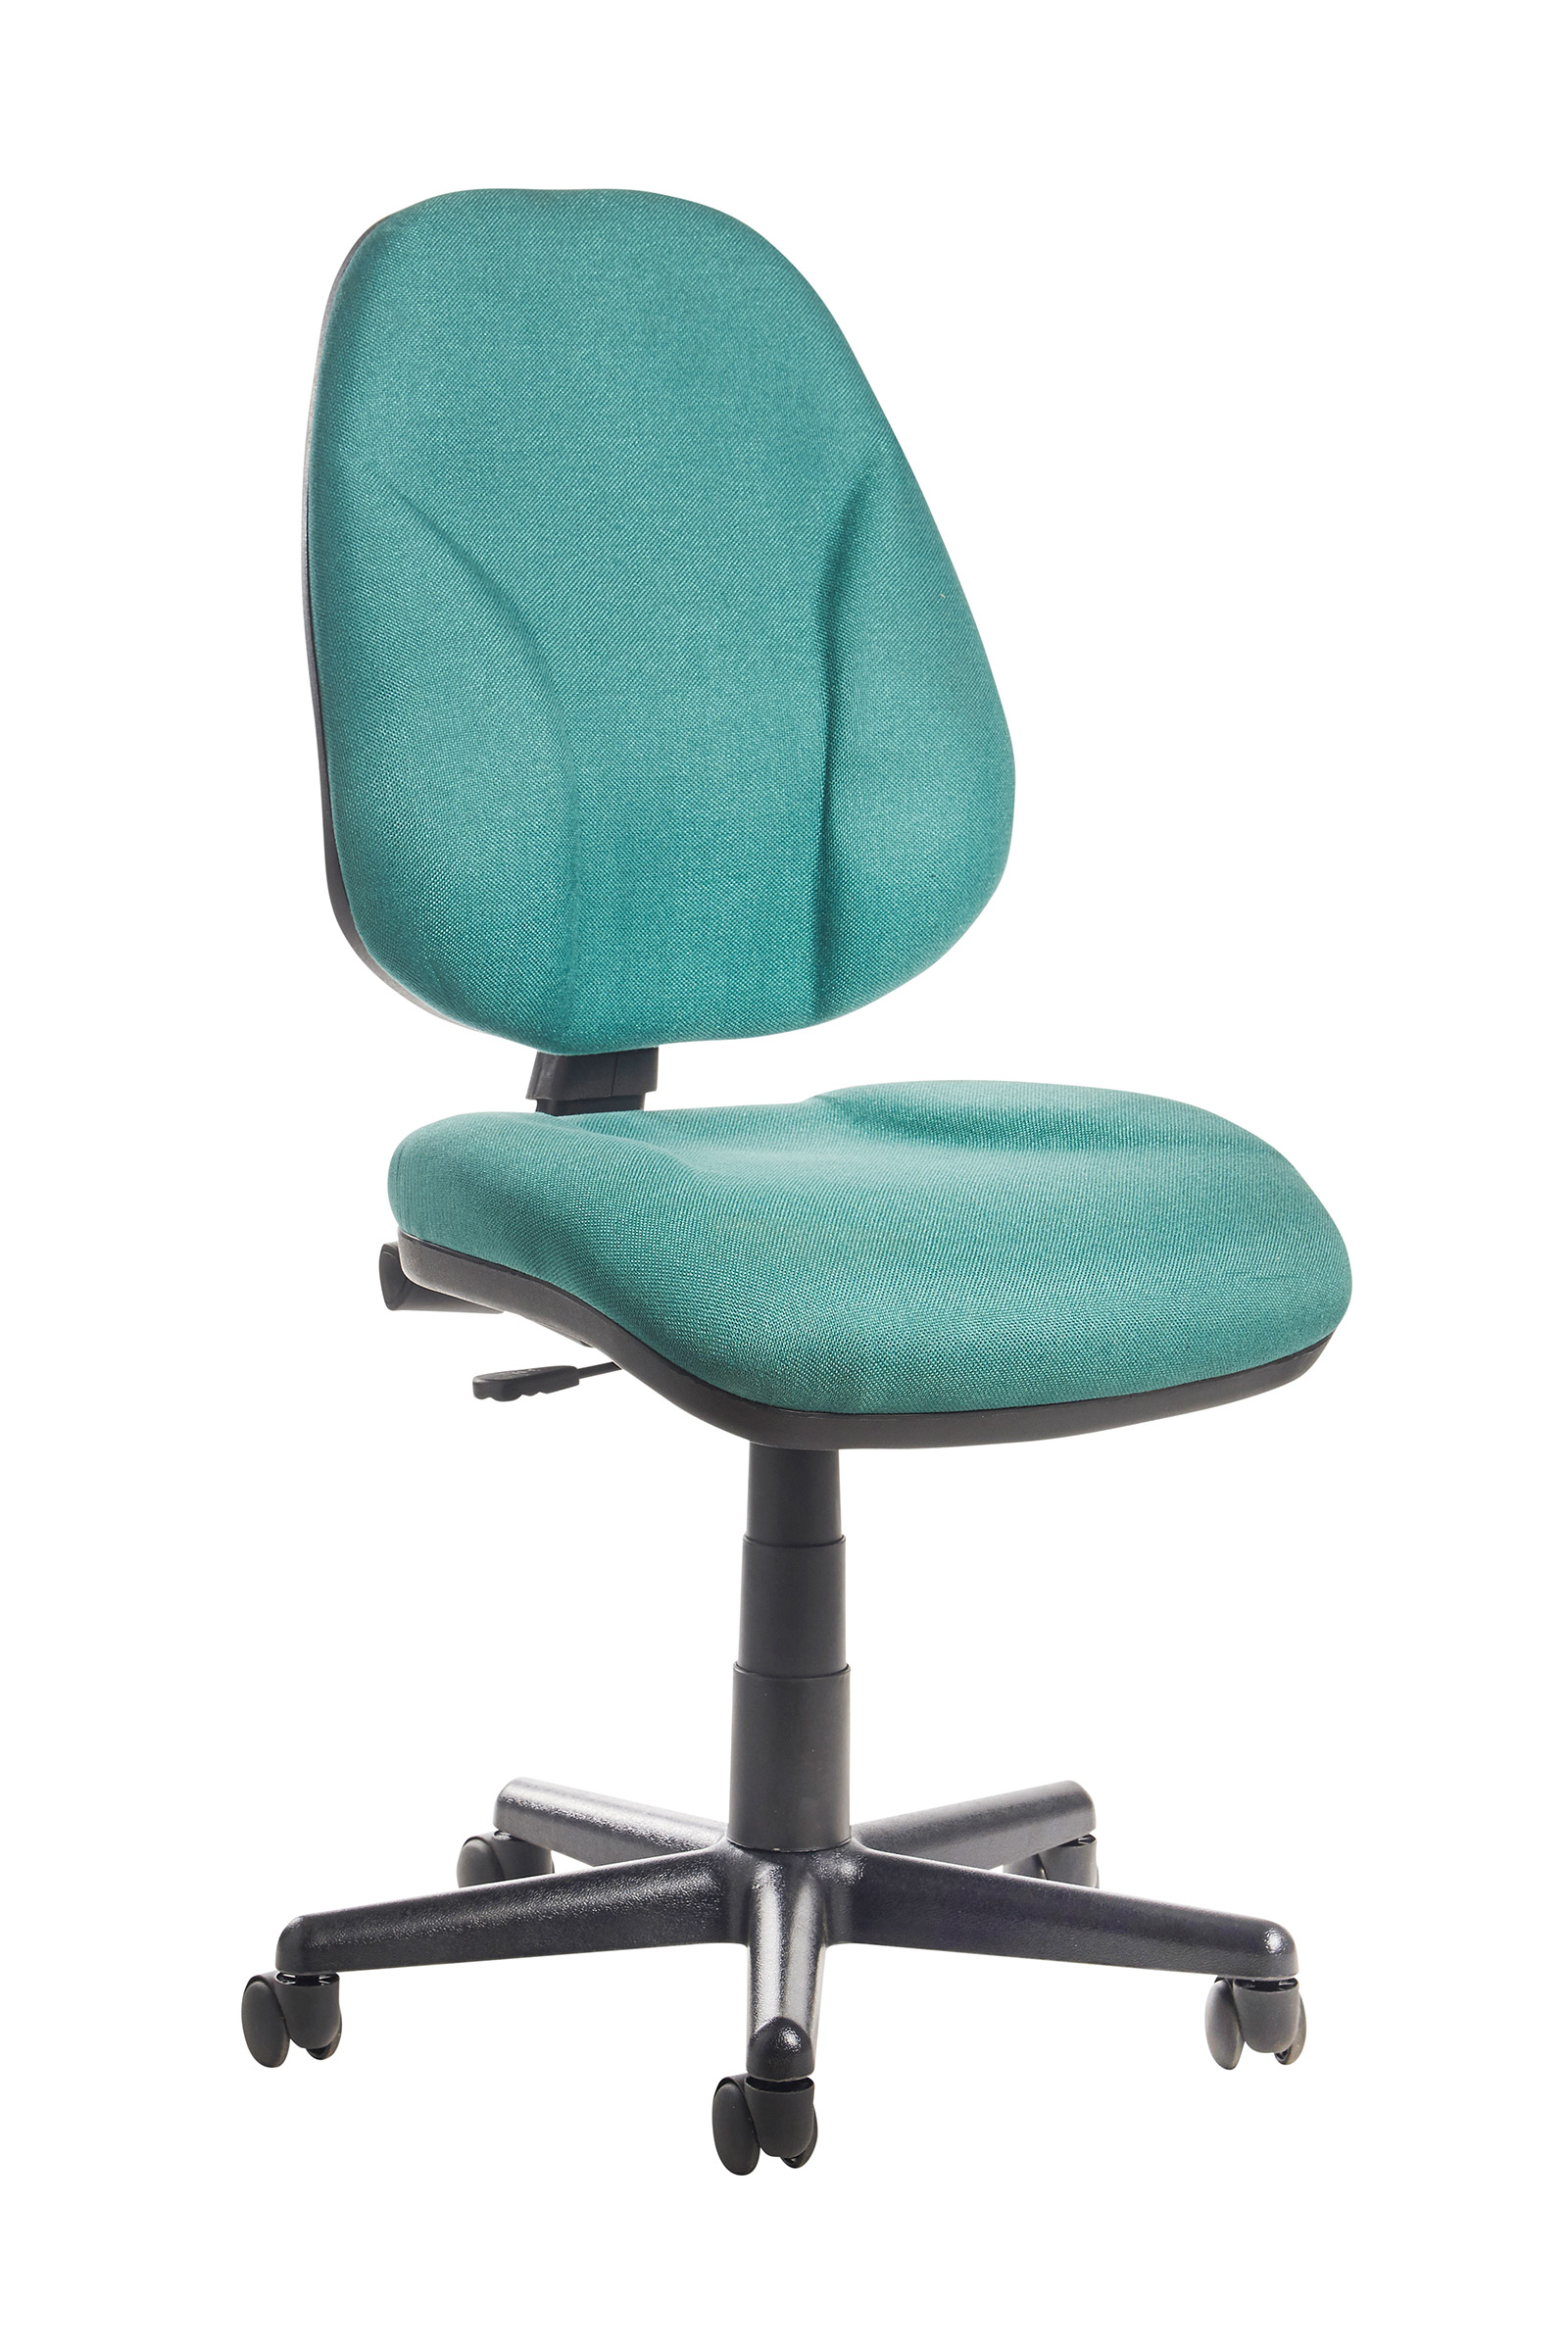 Bilbao fabric operators chair with lumbar support and no arms - green